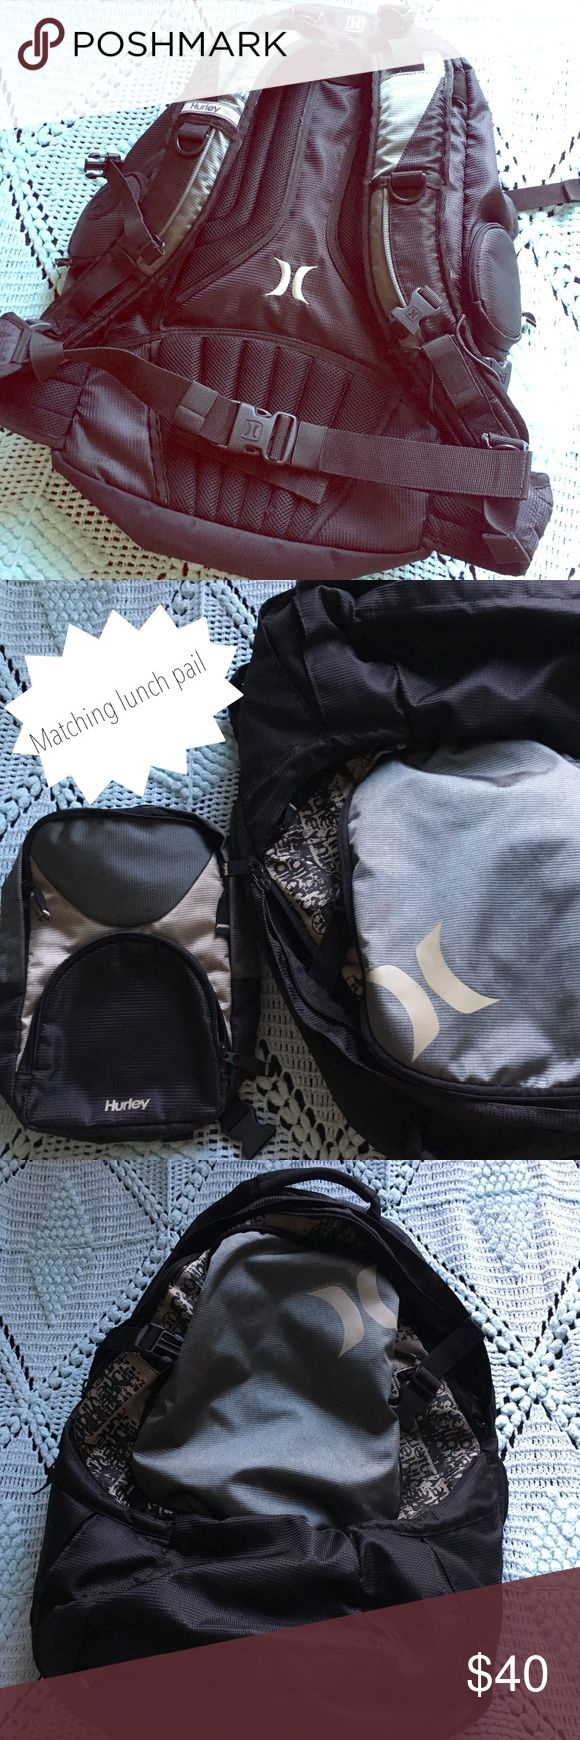 Heavy Duty Hurley Backpack - Hurley Backpack (Great Condition) - Black and Metallic Green Color - Adjustable Chest & Hip Straps - Padded Lower Back Area for Comfort - Includes Matching Lunch Pail - Three Zipper Compartments on Bottom Front - One Side Pouch for Insulated H2O Bottle - Large Front Compartment with Mesh Lining - Large Main Compartment with Plenty of Storage Space!  I did my best to label everything in the photos, but if you have any questions, please do not hesitate to ask :)…